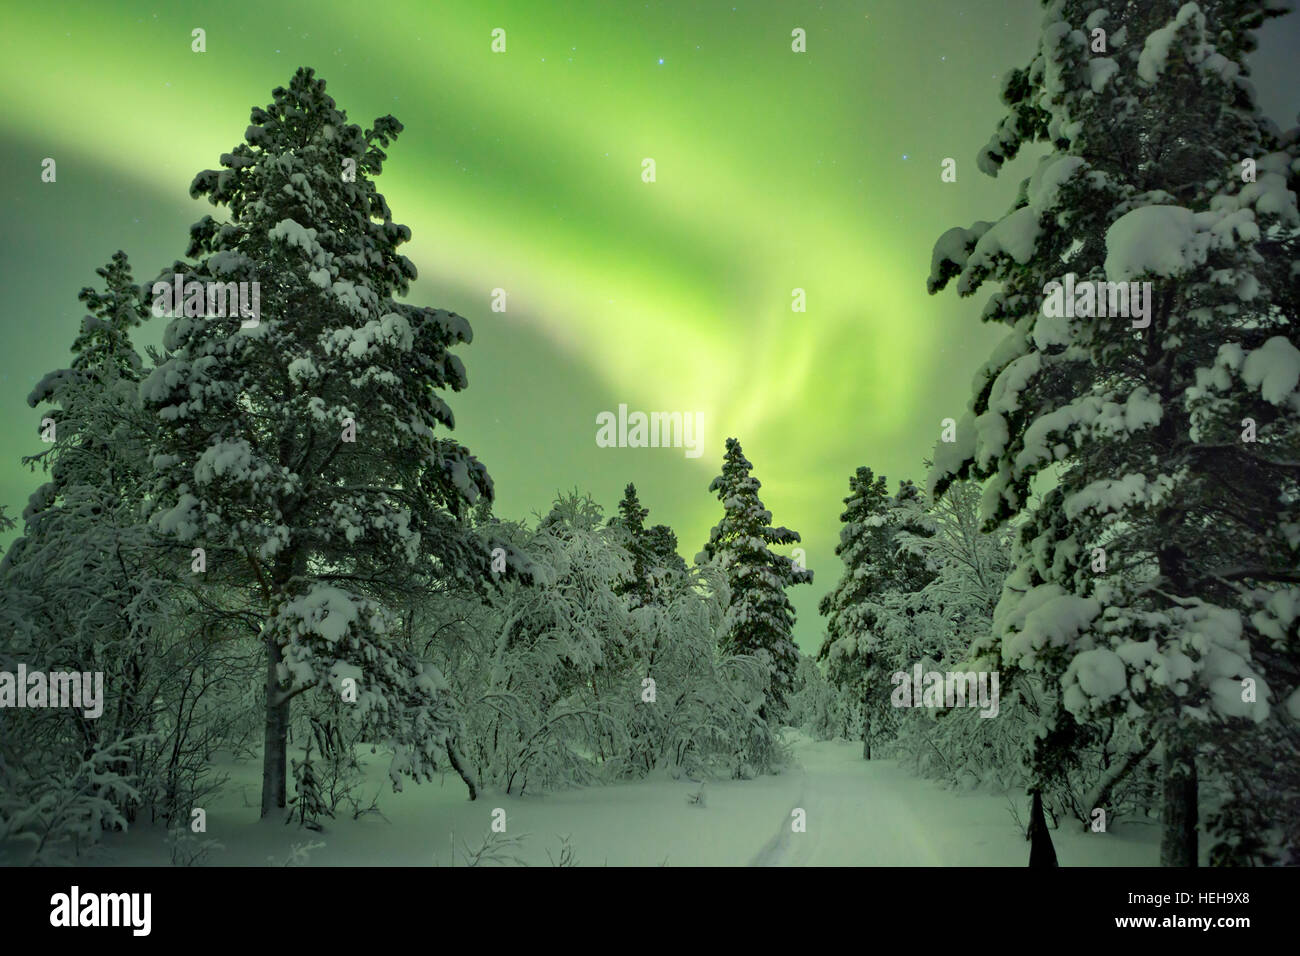 Spectacular aurora borealis (northern lights) over a path through winter landscape in Finnish Lapland. - Stock Image